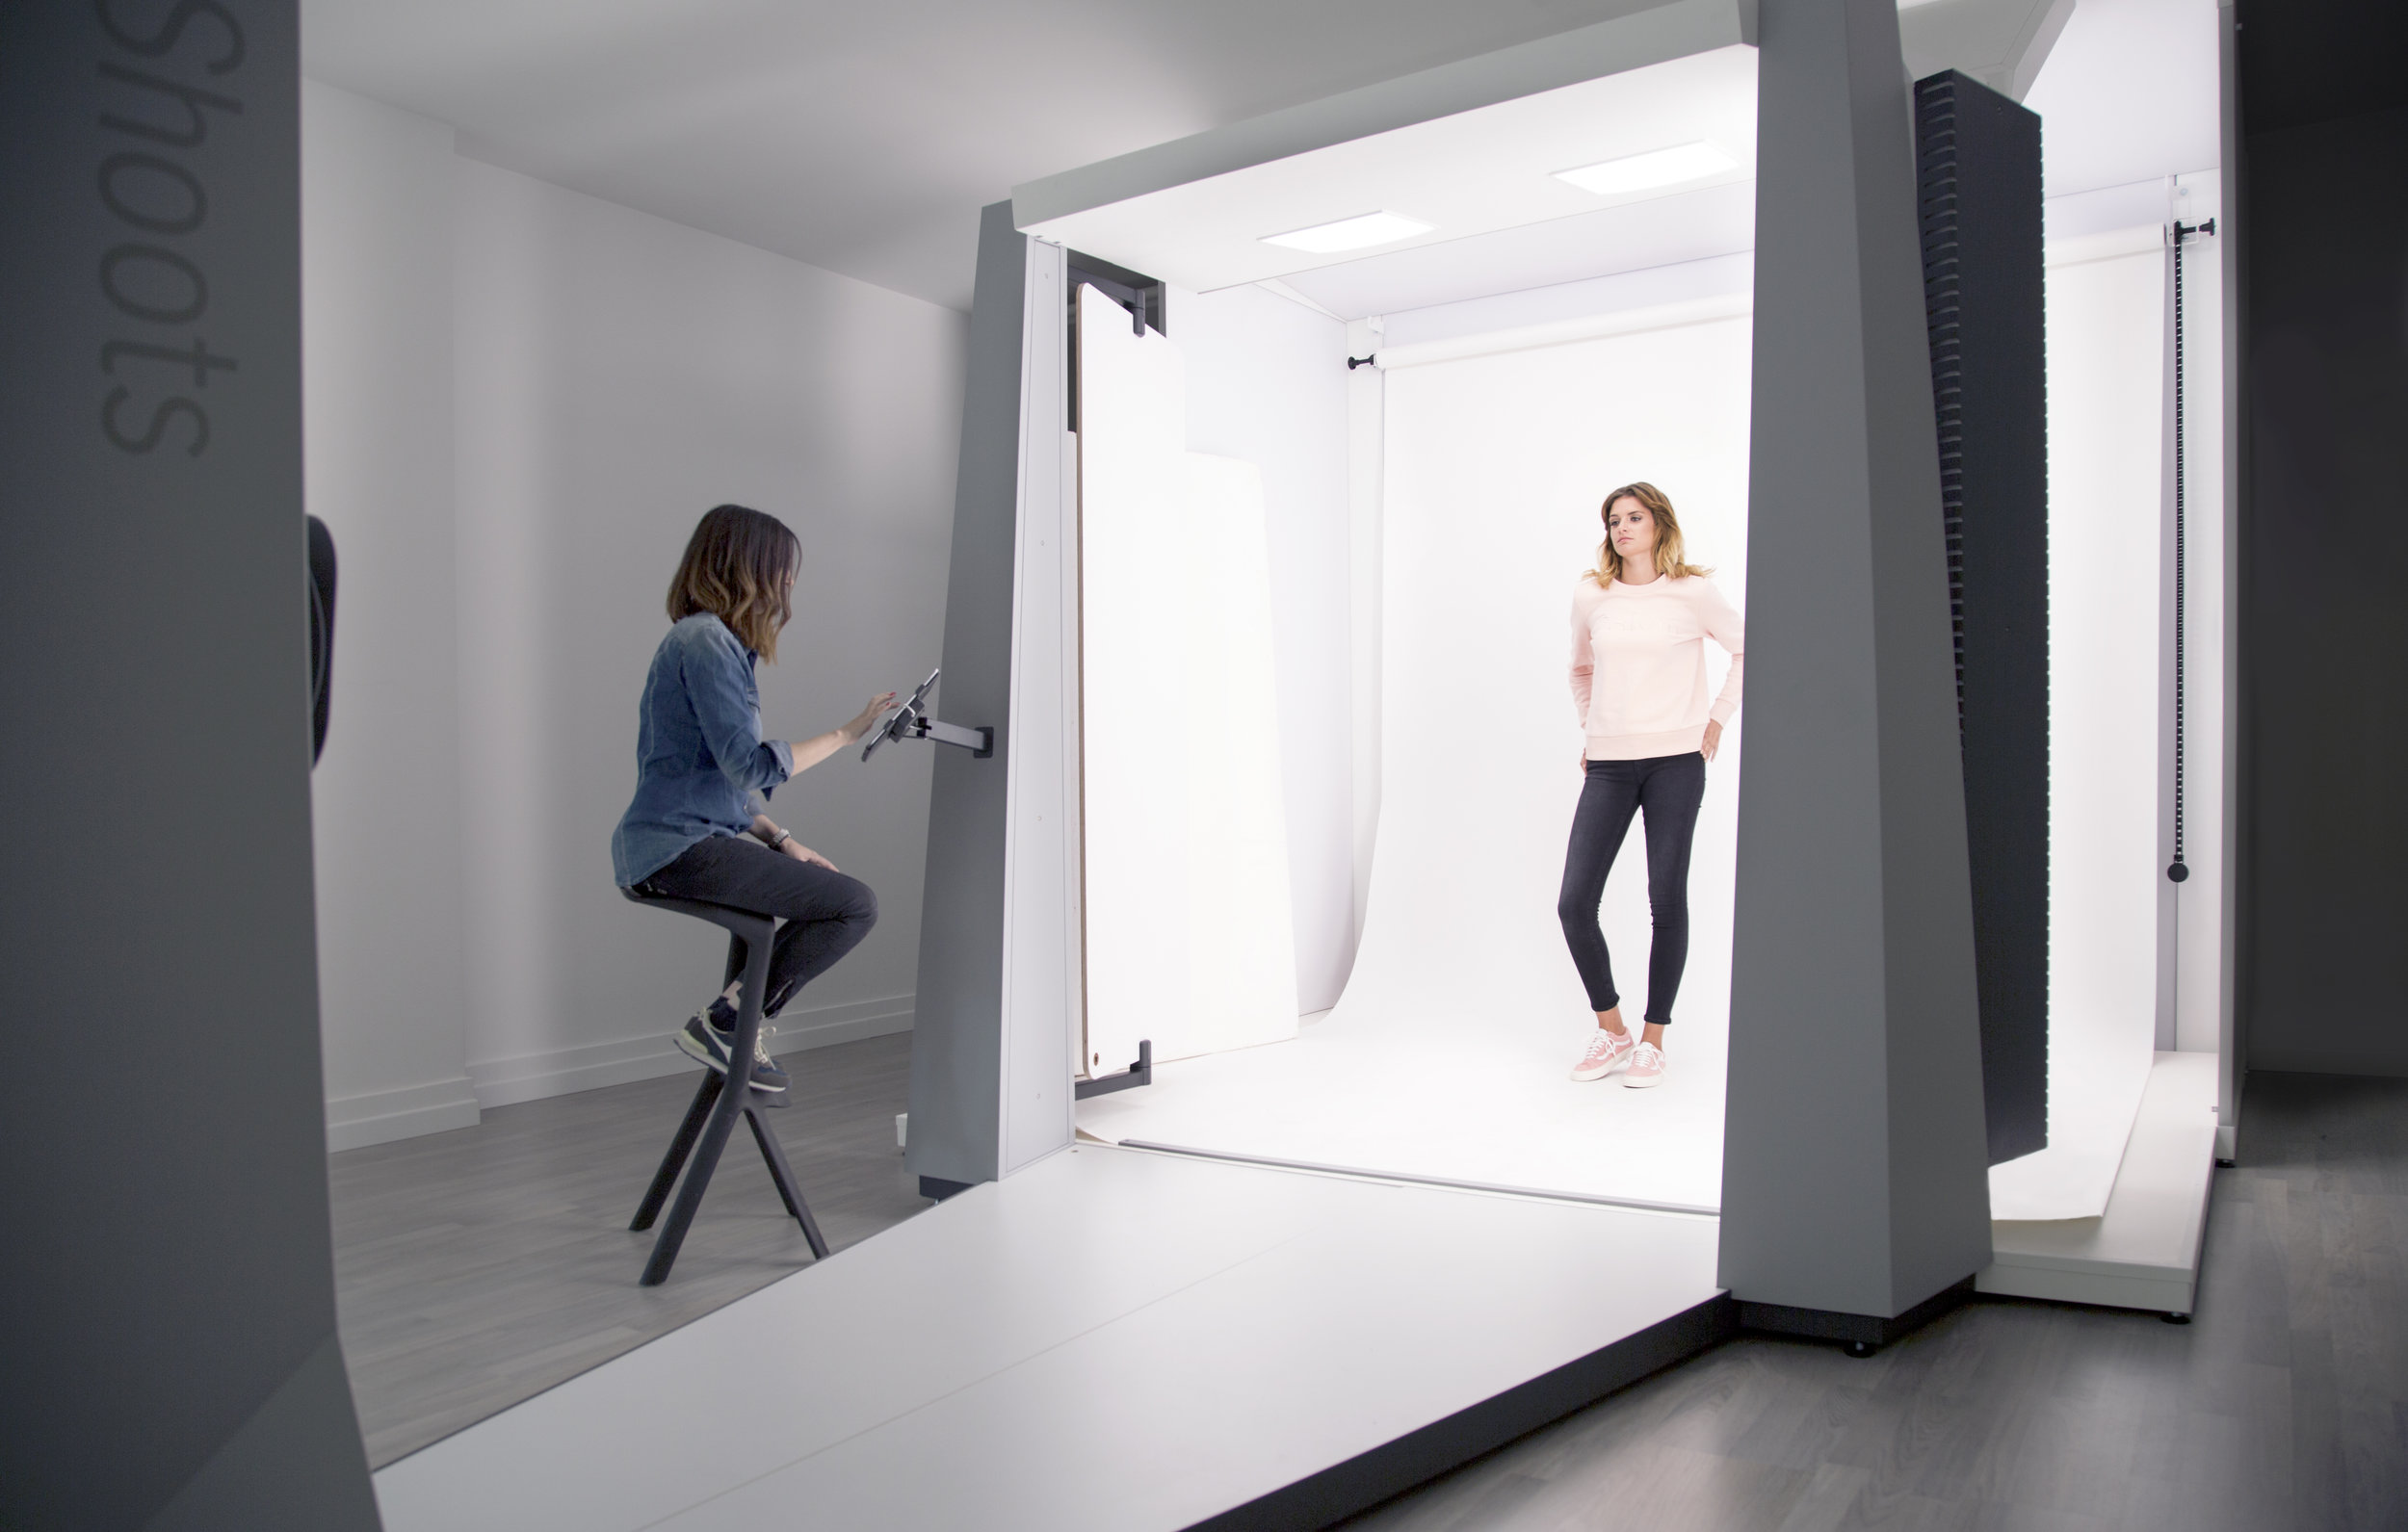 The StyleShoots Live is a compact studio capable of capturing both stills and video with a  Canon EOS 5D Mark III  camera (soon to be a  Canon EOS R  instead) with a  Canon EF 24-105mm f/4L IS USM  lens. Its software even offers customisable presets to configure the camera position, tilt, and zoom for fast setup and consistent results. © StyleShoots BV